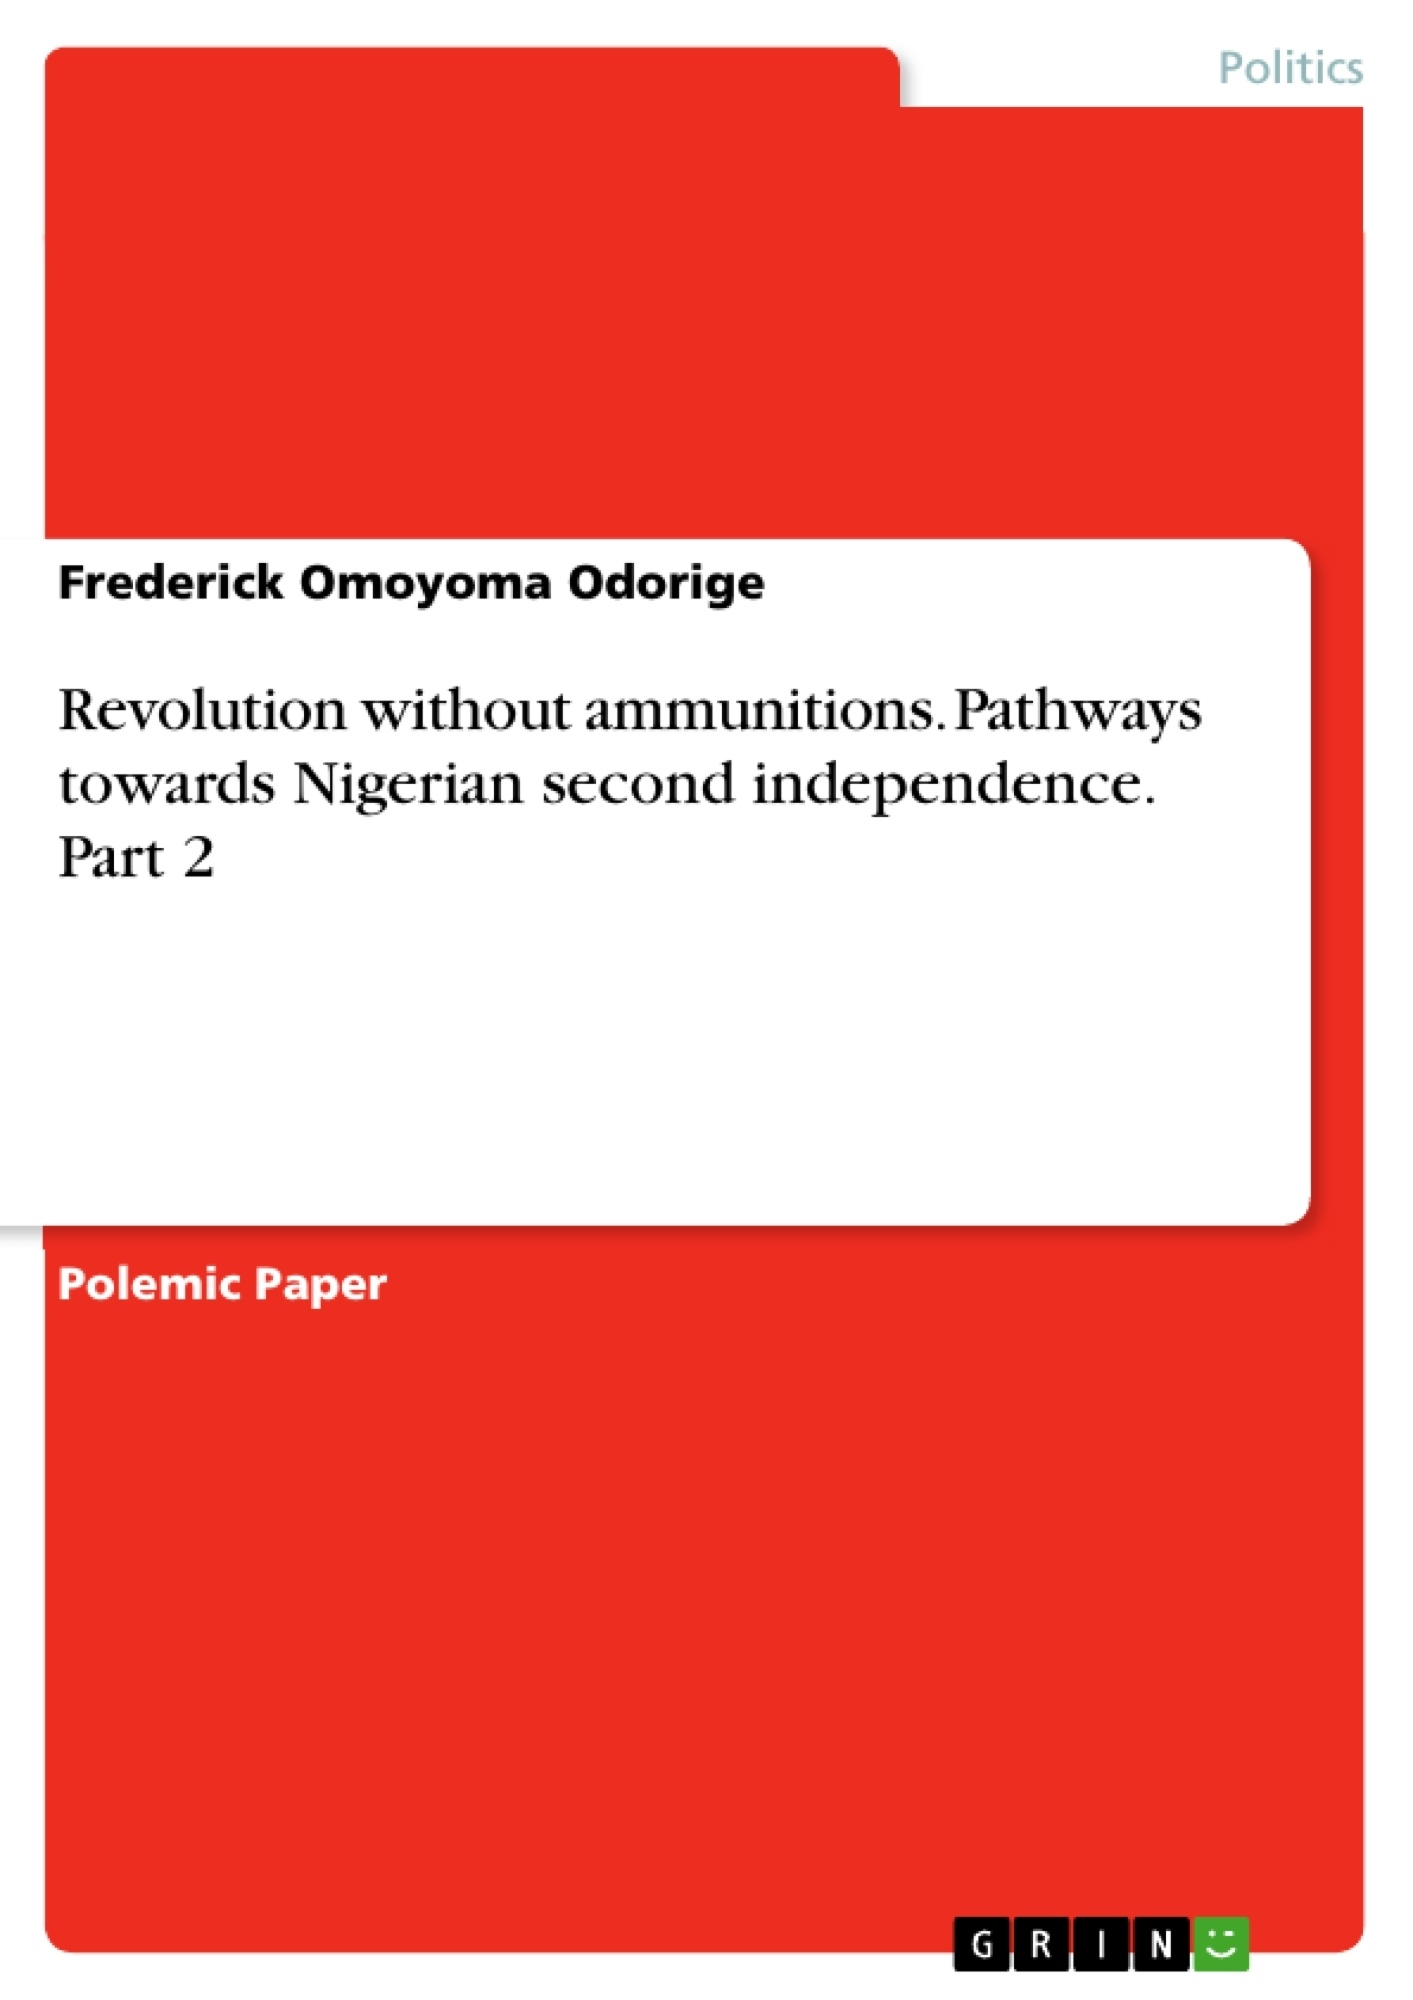 Title: Revolution without ammunitions. Pathways towards Nigerian second independence. Part 2